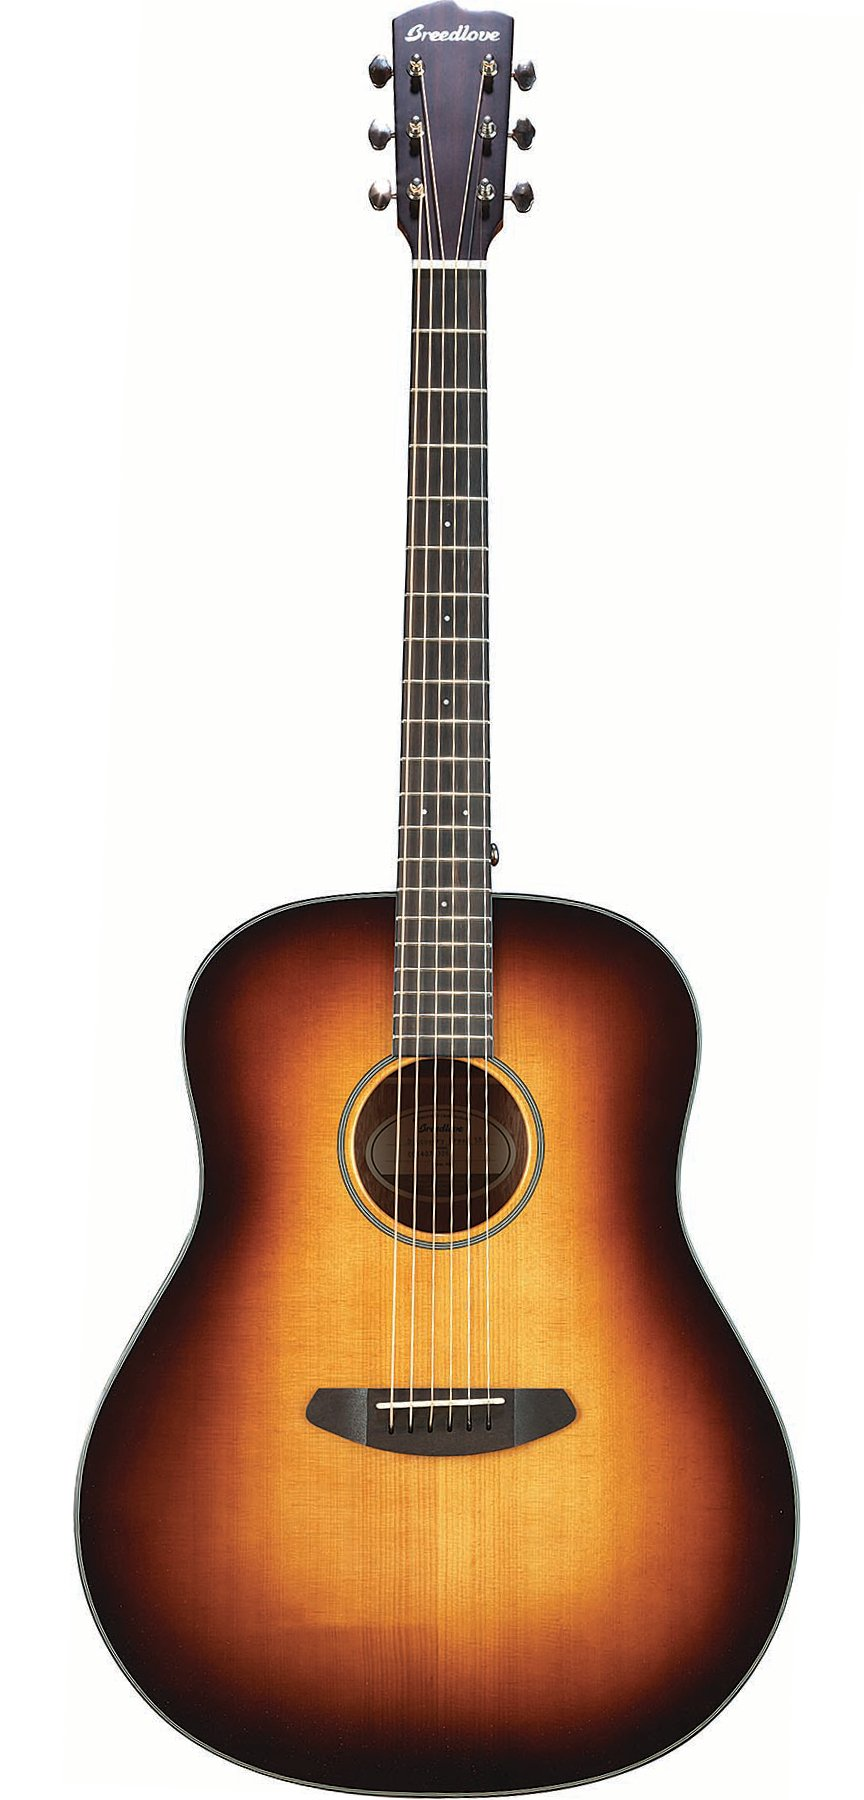 Acoustic Guitar with Sunburst Finish